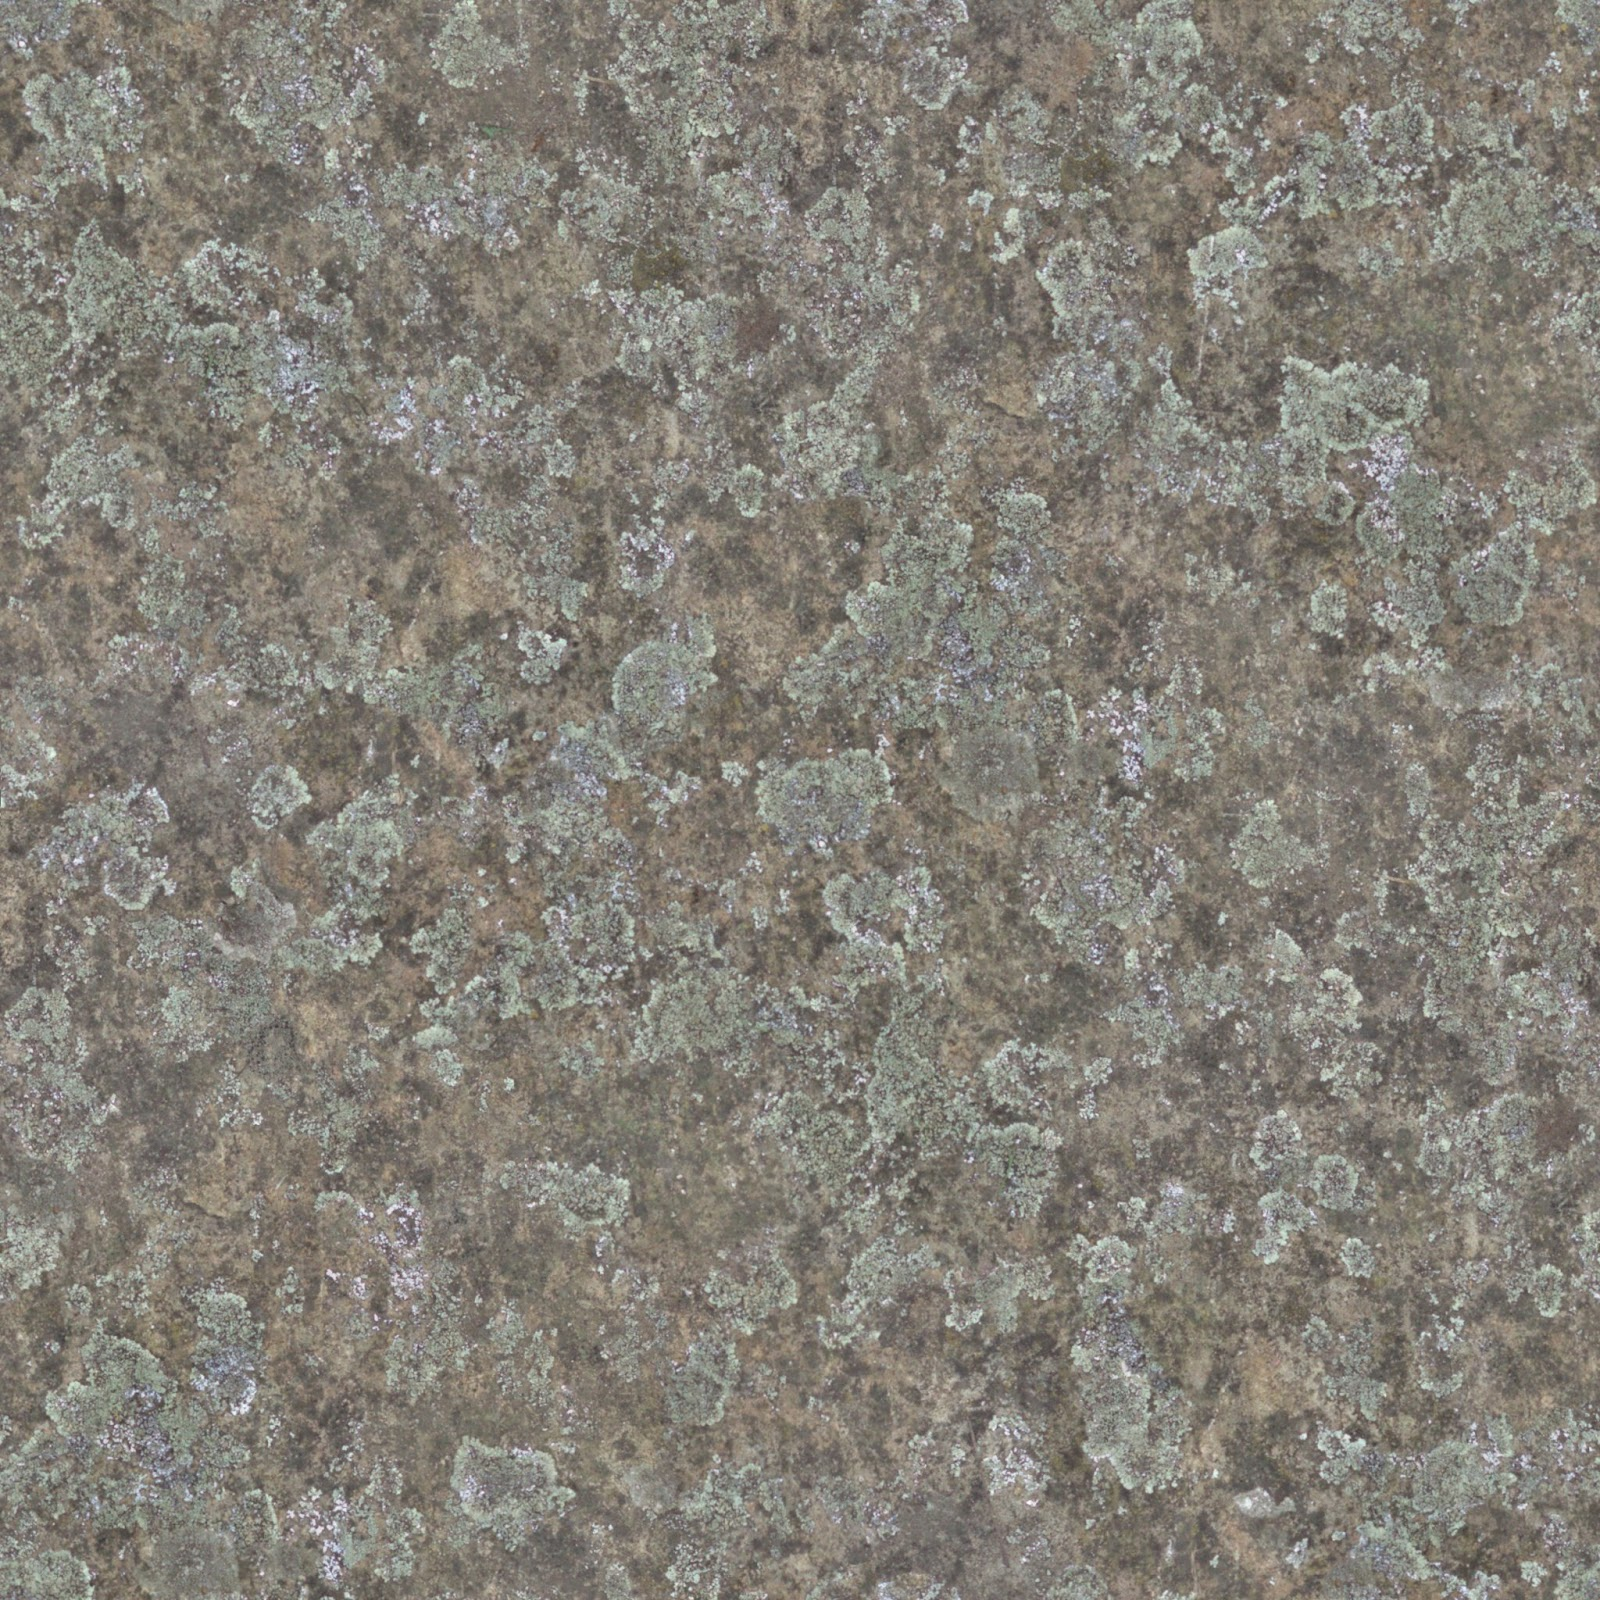 (Stone 9) Moss covered stone seamless texture 2048x2048